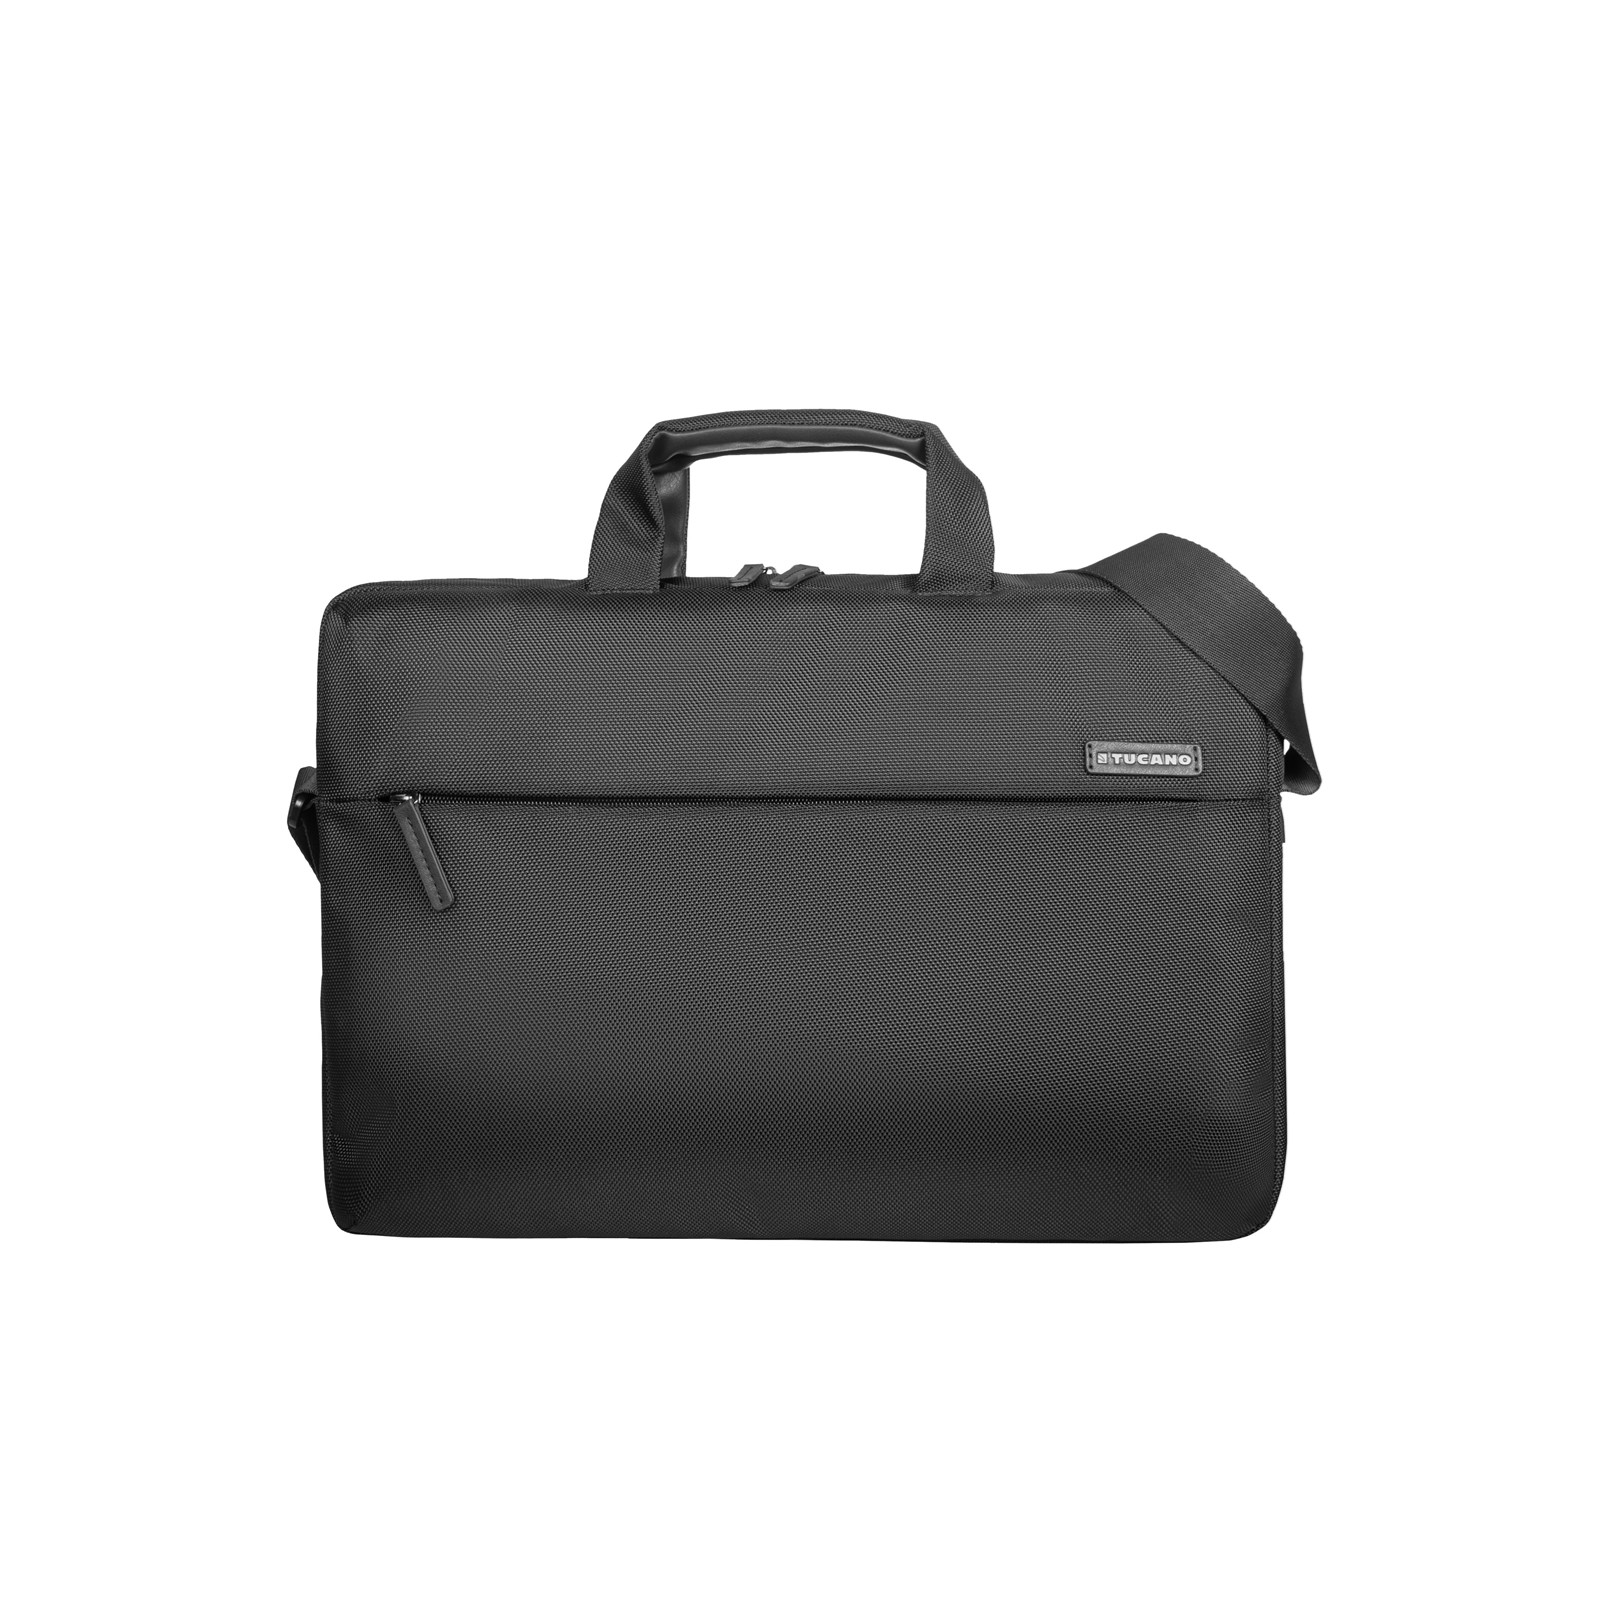 Tucano Free & Busy Business bag 15.6'' laptop/15'' MacBook Pro, Bla